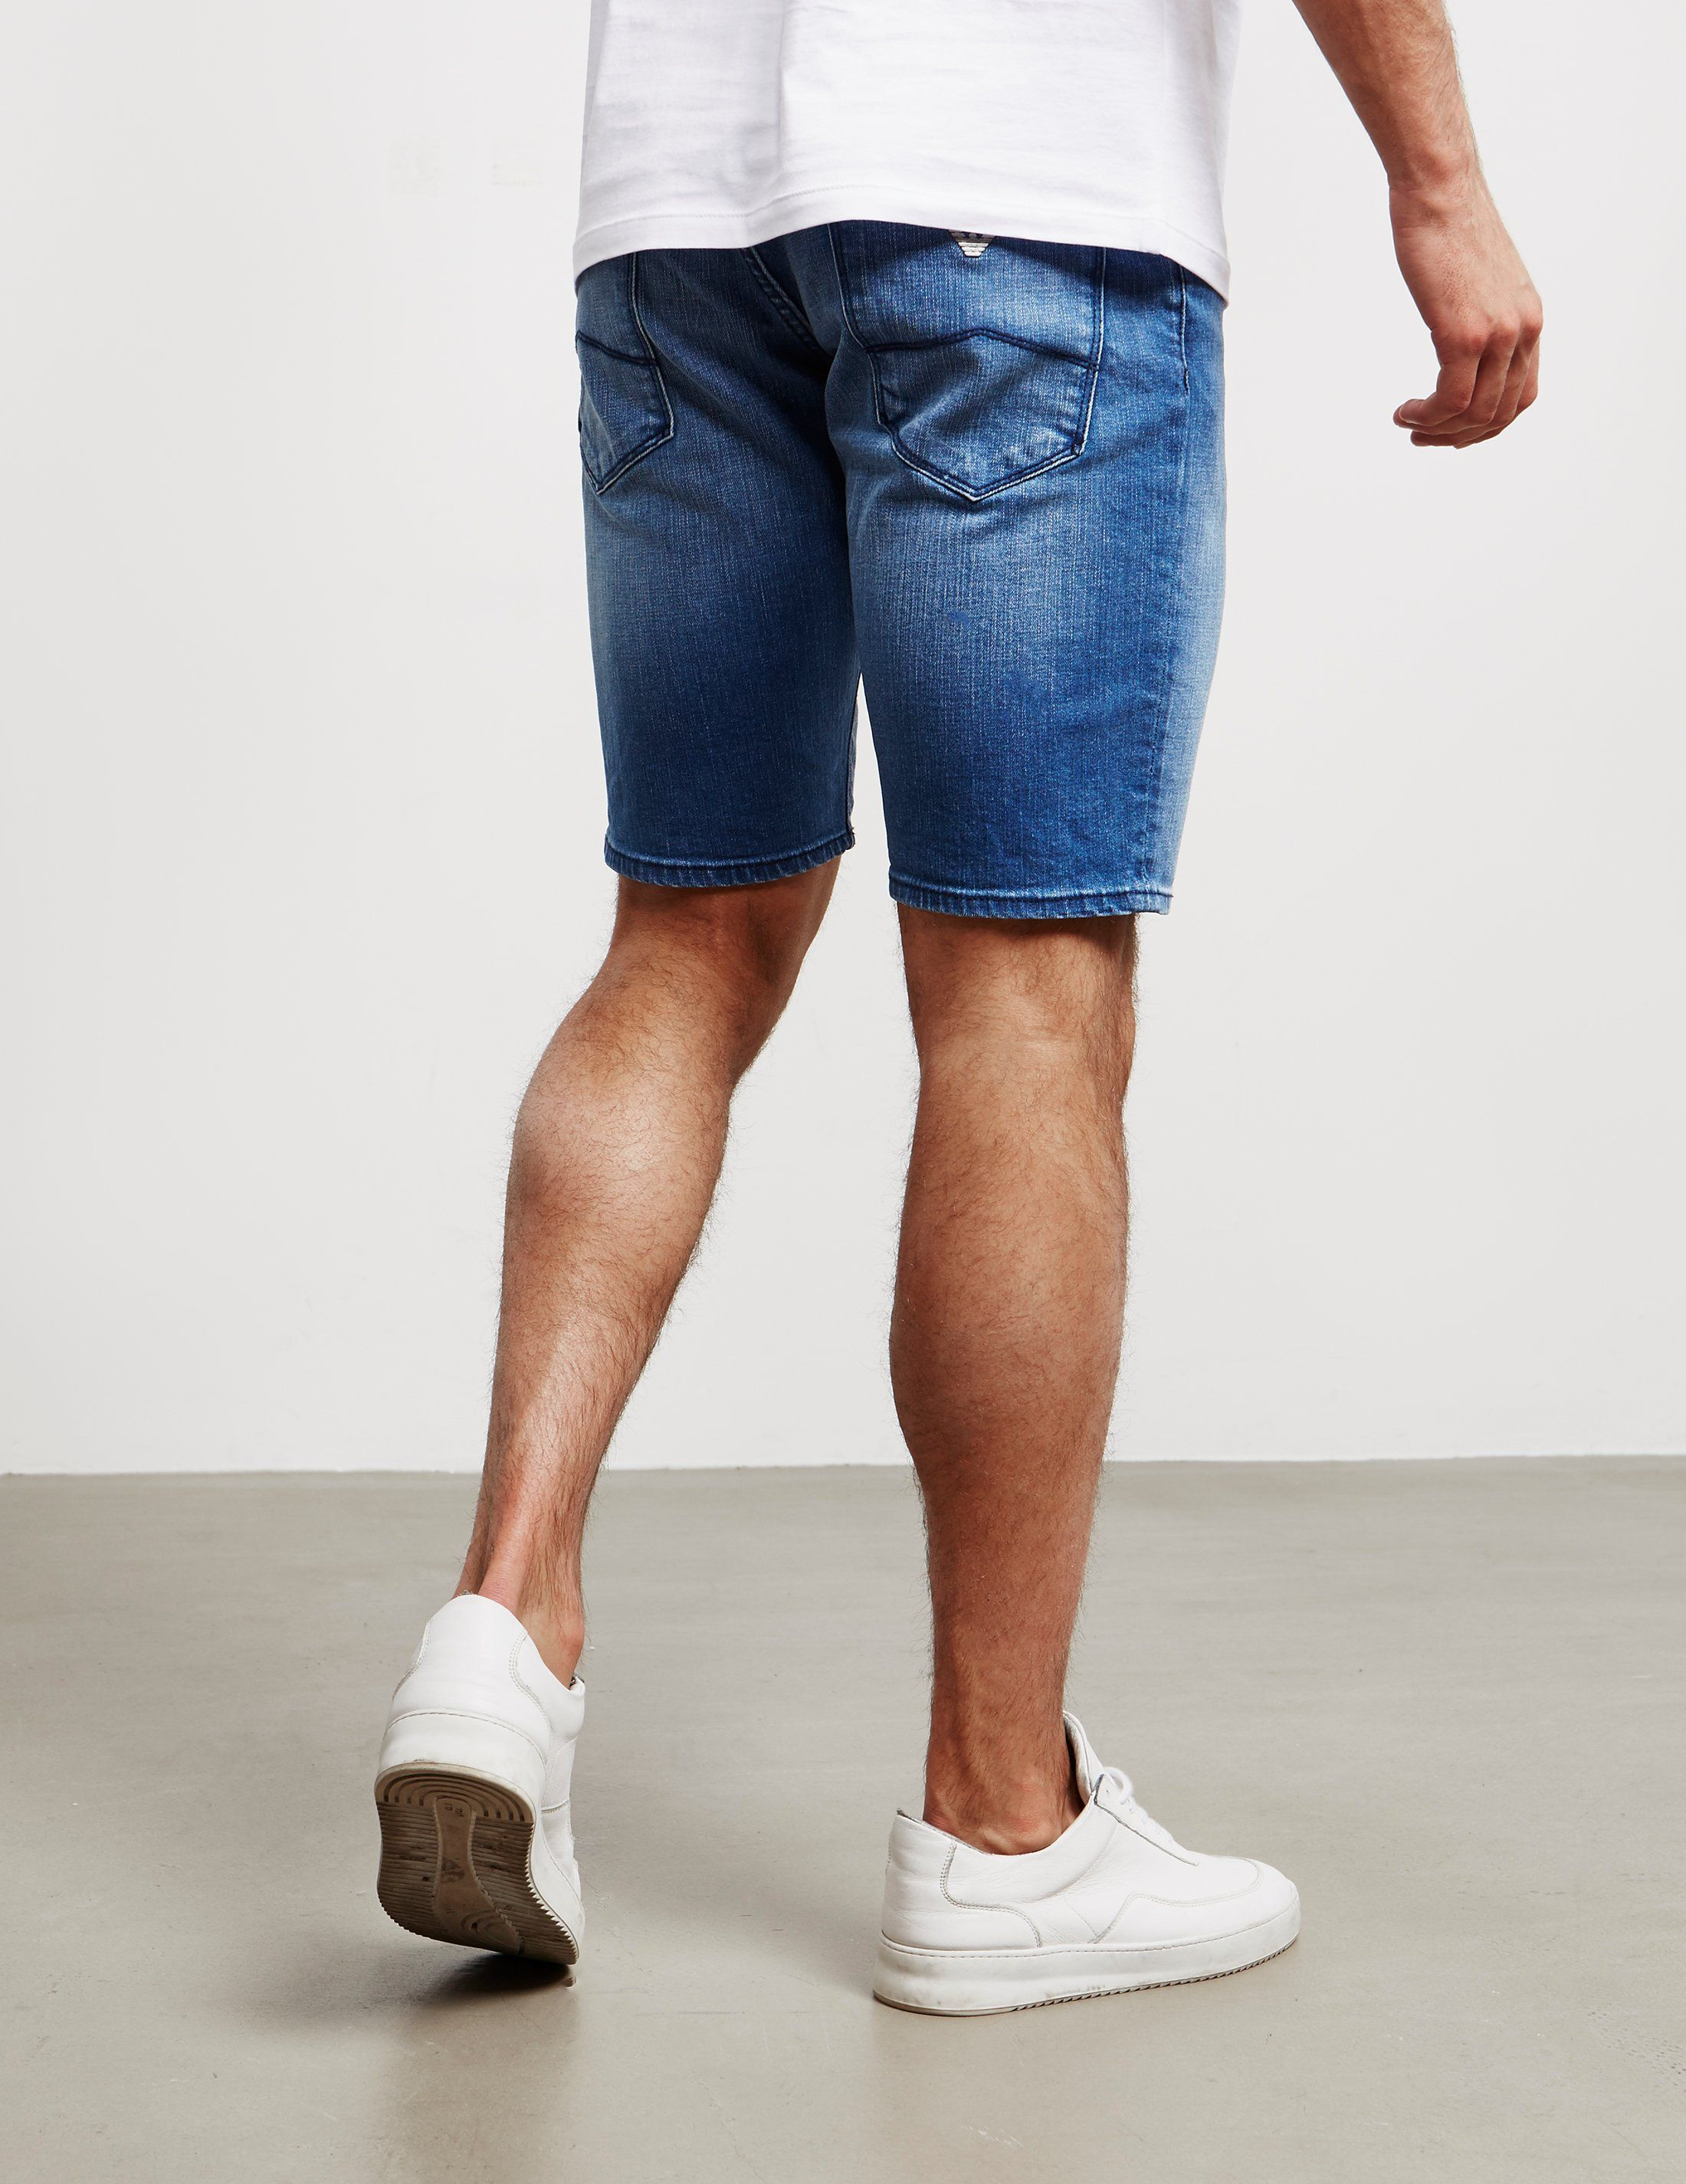 Emporio Armani 5 Pocket Denim Shorts - Online Exclusive